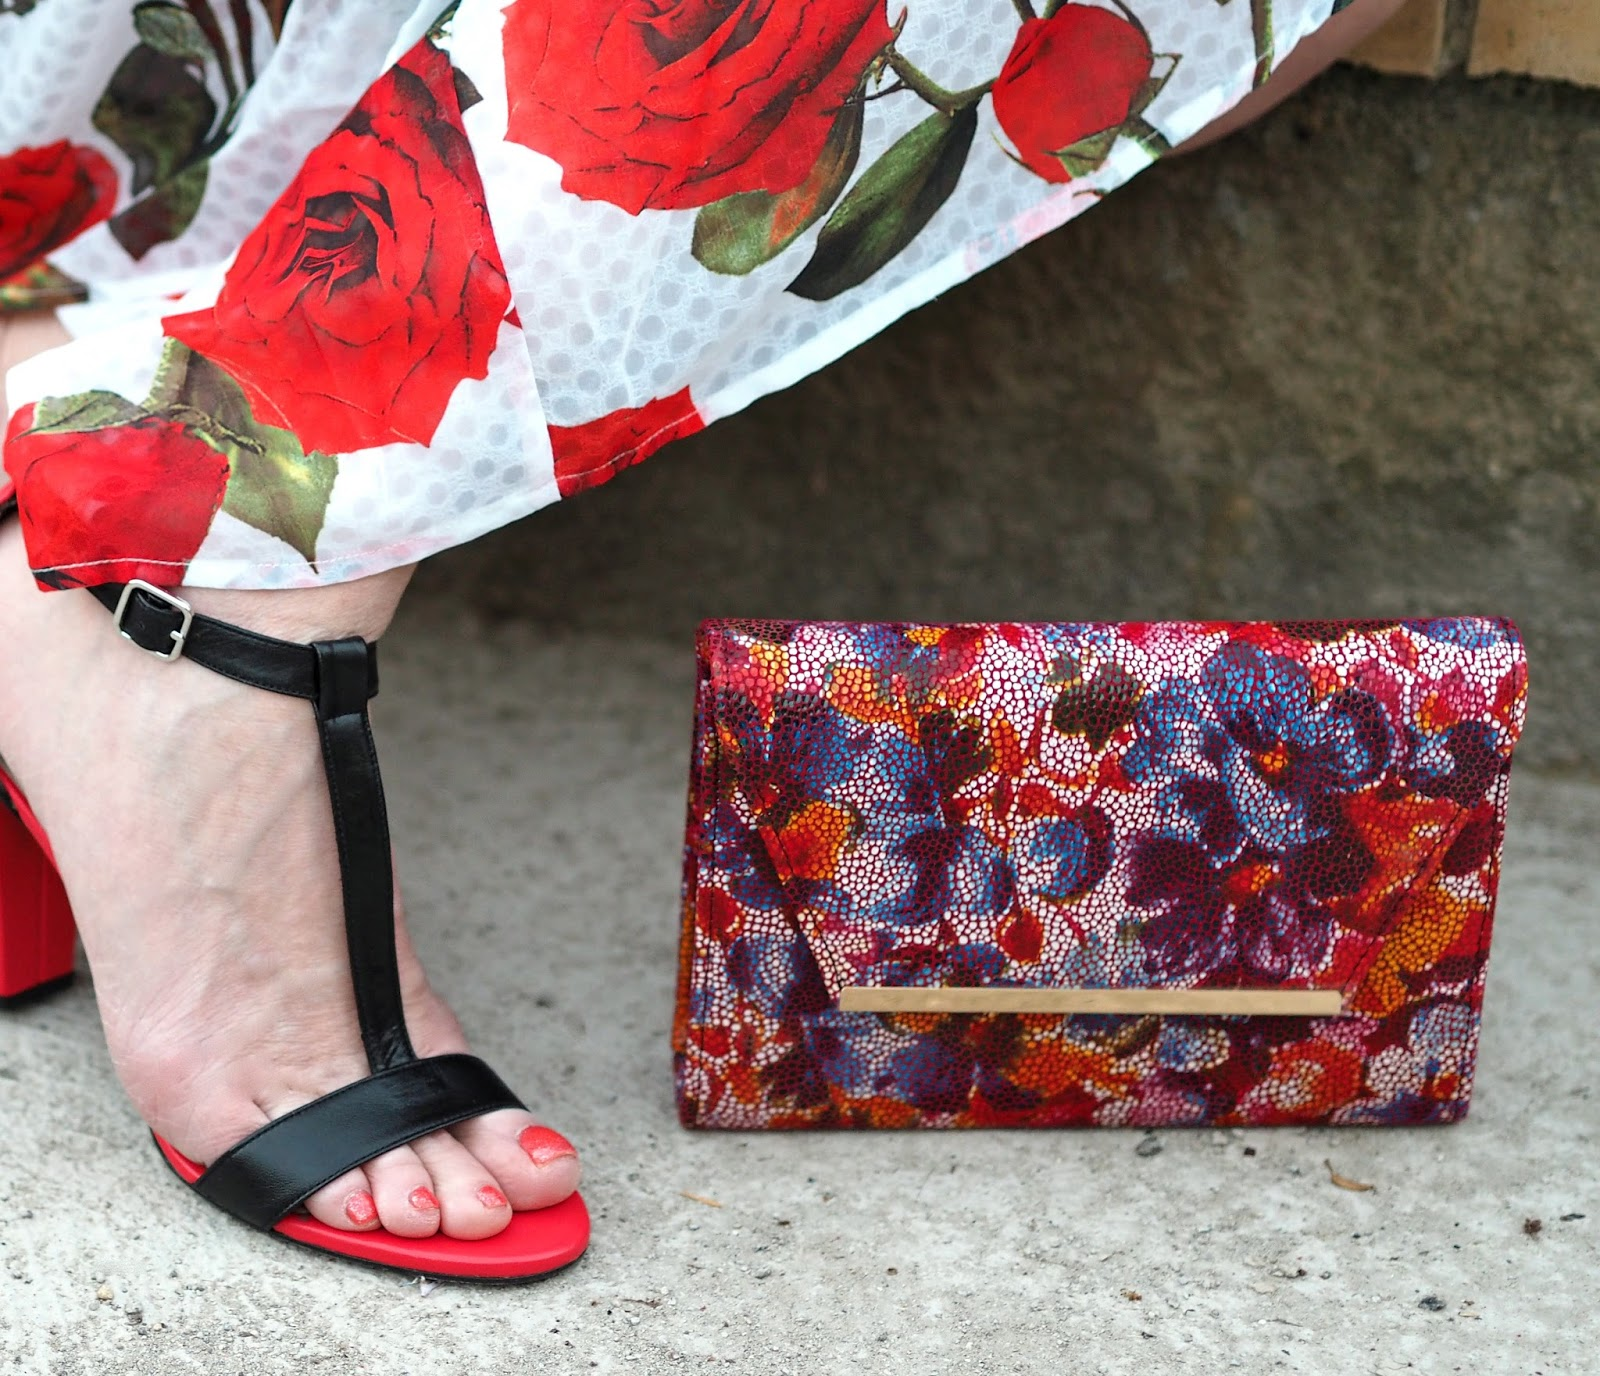 Alice's Pig White and red floral rose draped midi dress with red and black high-heeled sandals style over 40 leather multi-floral clutch bag